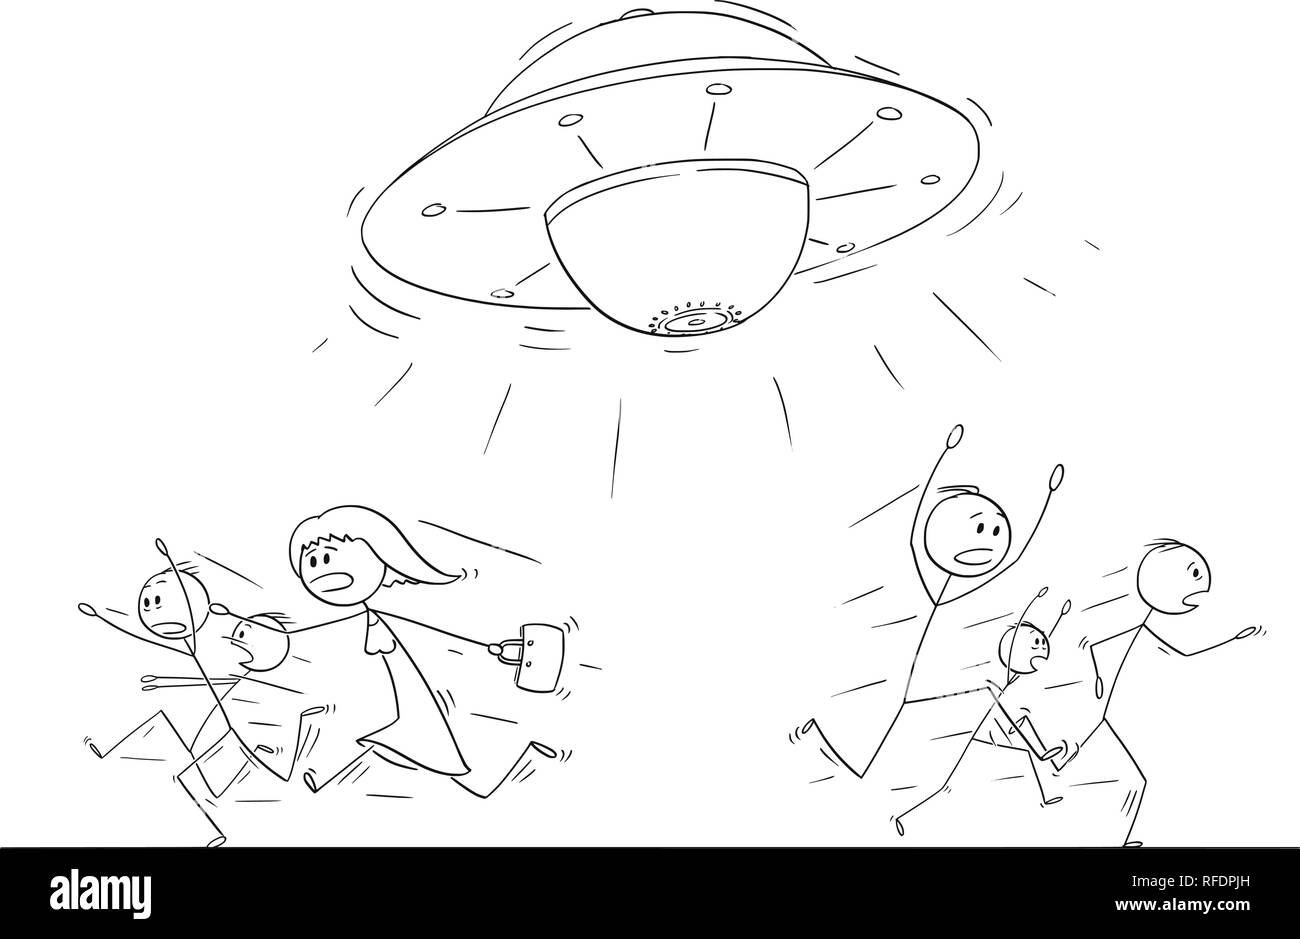 Cartoon drawing of crowd of people running in panic away from ufo or alien ship